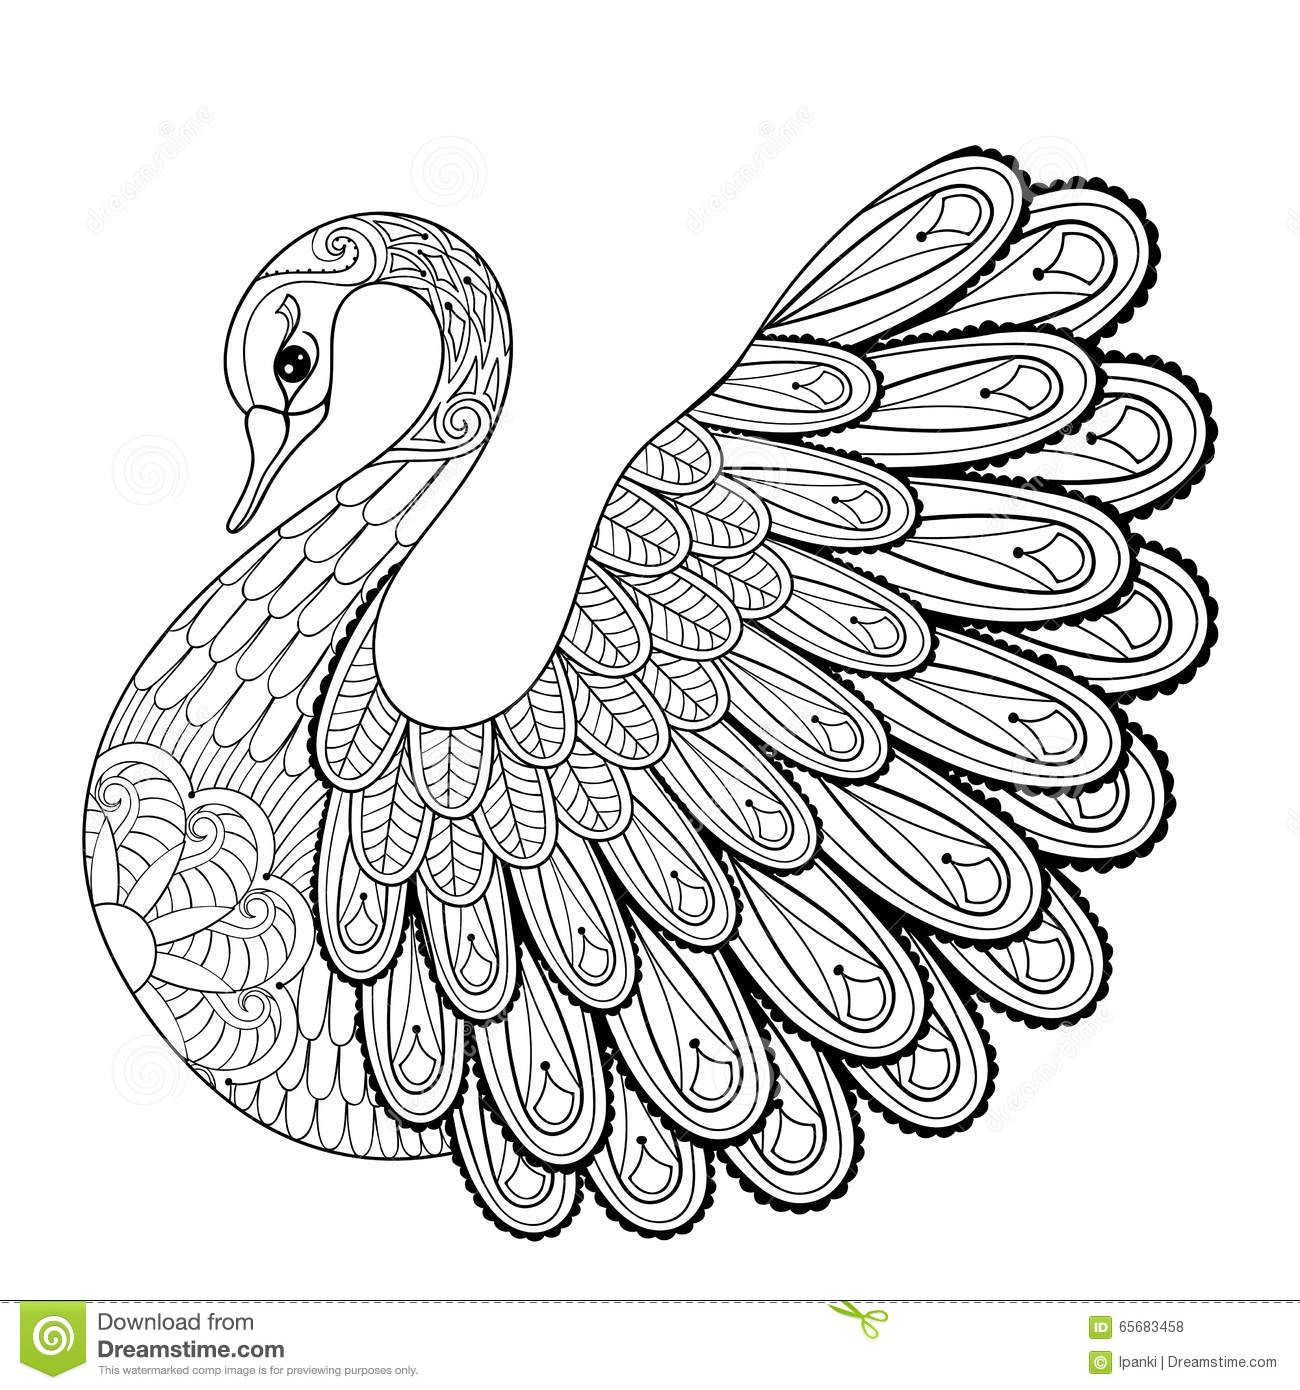 Hand Drawing Artistic Swan For Adult Coloring Pages In Doodle Stock Vector